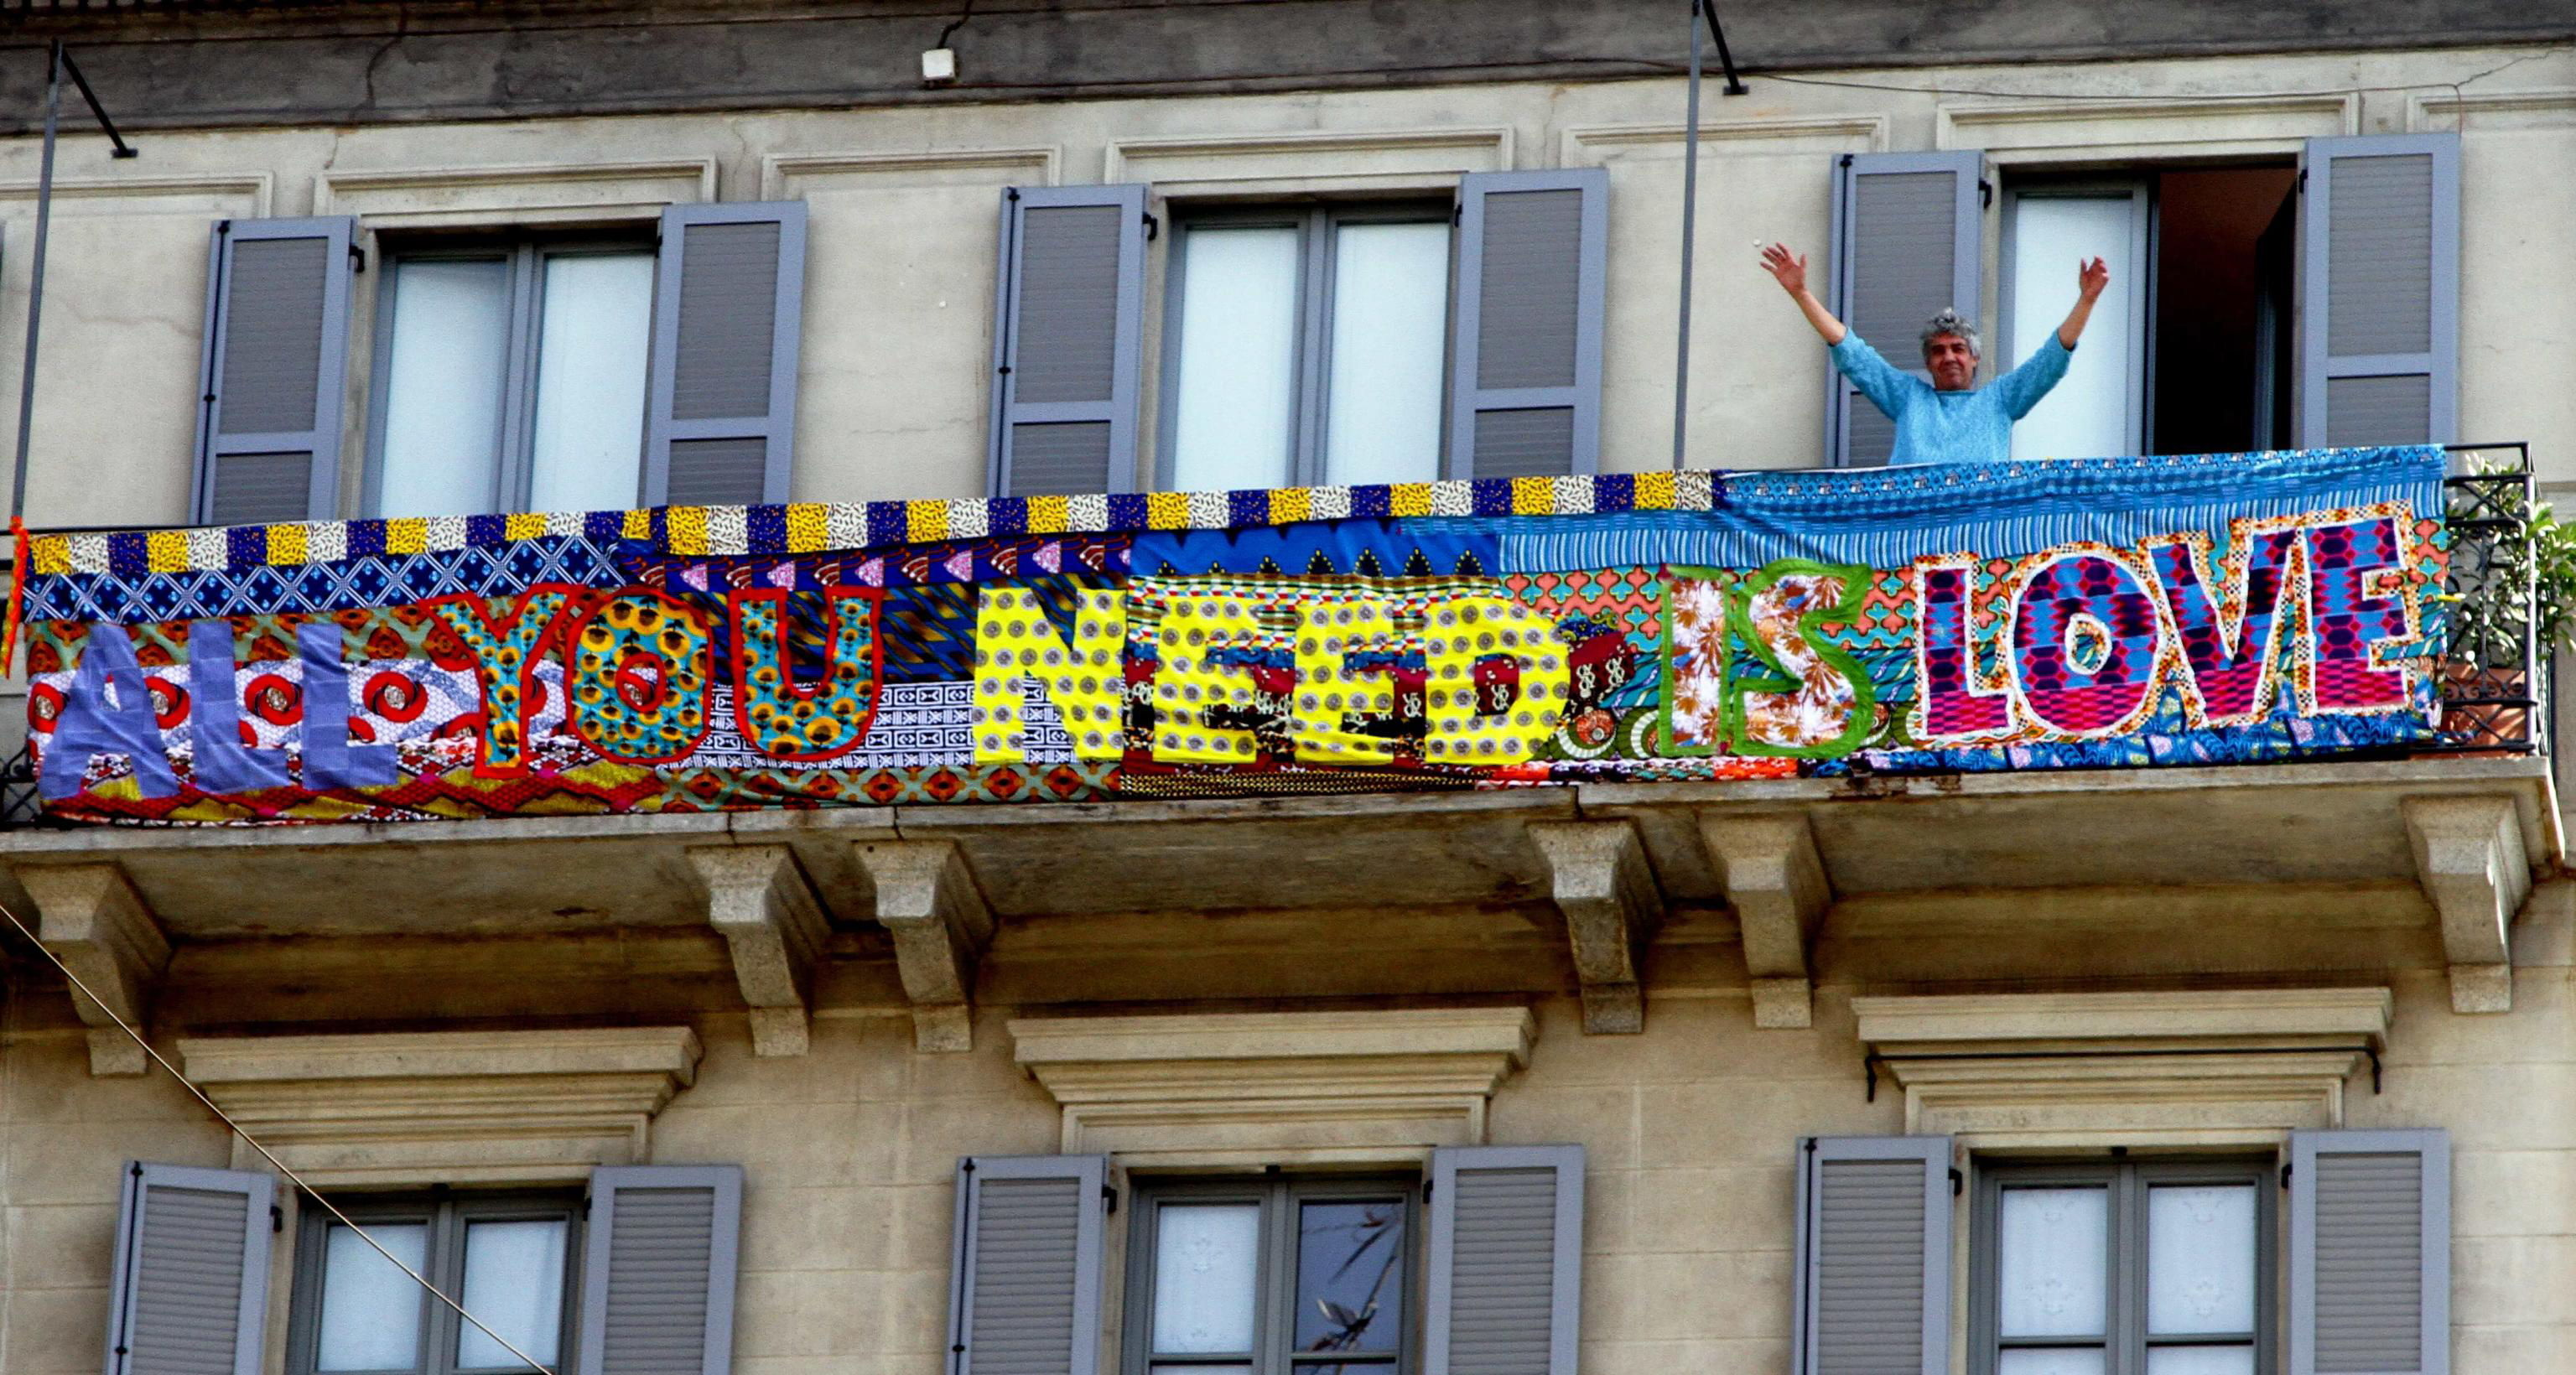 Milan (Italy), 28/03/2020.- A banner reading 'All You Need is Love' is seen at a balcony in Milan, Italy, during the country's lockdown following the COVID-19 new coronavirus pandemic, 28 March 2020. Italy is under lockdown in an attempt to stop the widespread of the SARS-CoV-2 coronavirus causing the Covid-19 disease. (Italia) EFE/EPA/PAOLO SALMOIRAGO